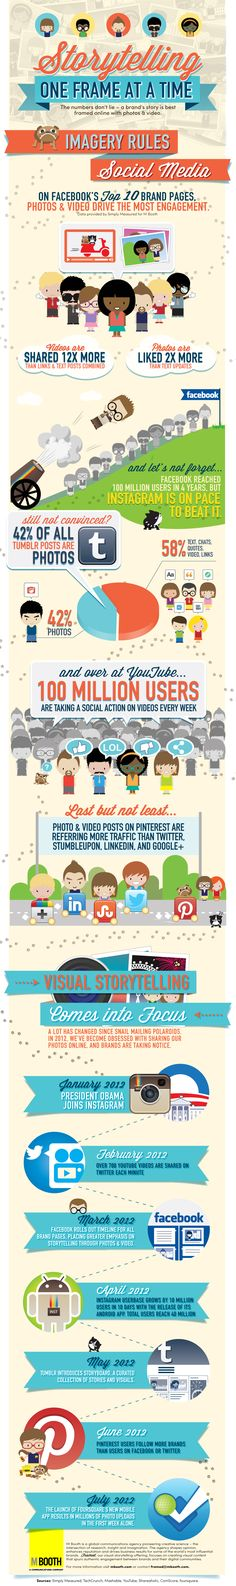 The Facts and Figures about the Power of Visual Content – Infographic